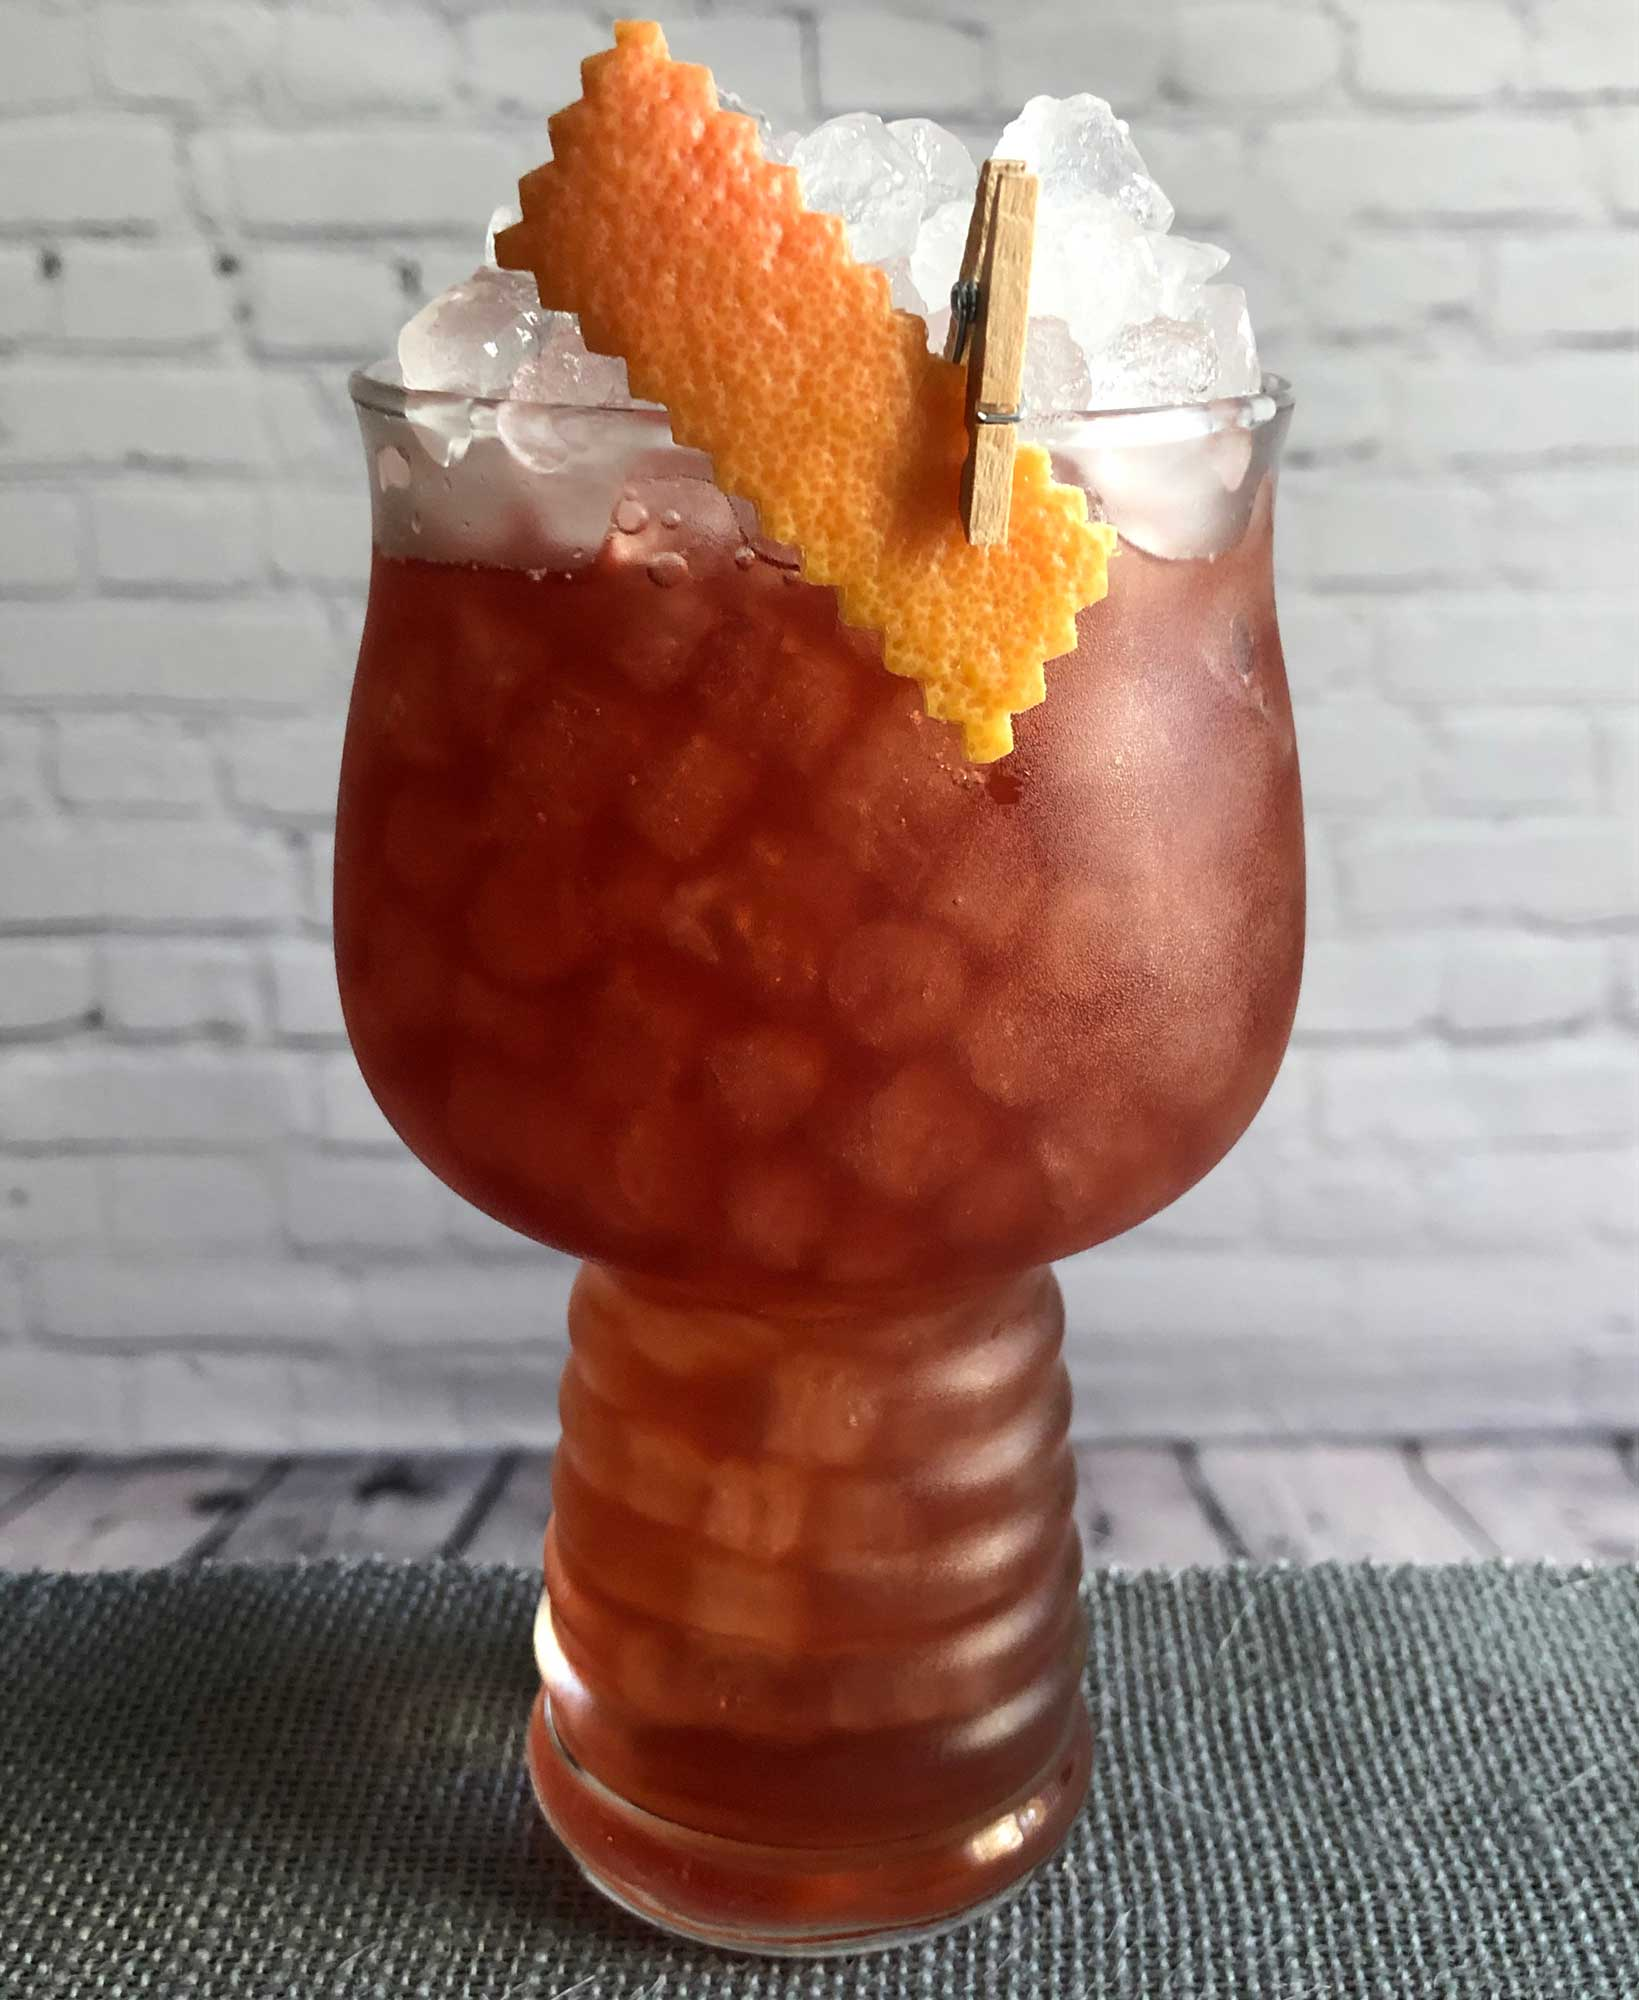 An example of the Tautavel Sunrise, the mixed drink (cocktail) featuring Byrrh Grand Quinquina, soda water, mezcal, and grapefruit juice; photo by Lee Edwards